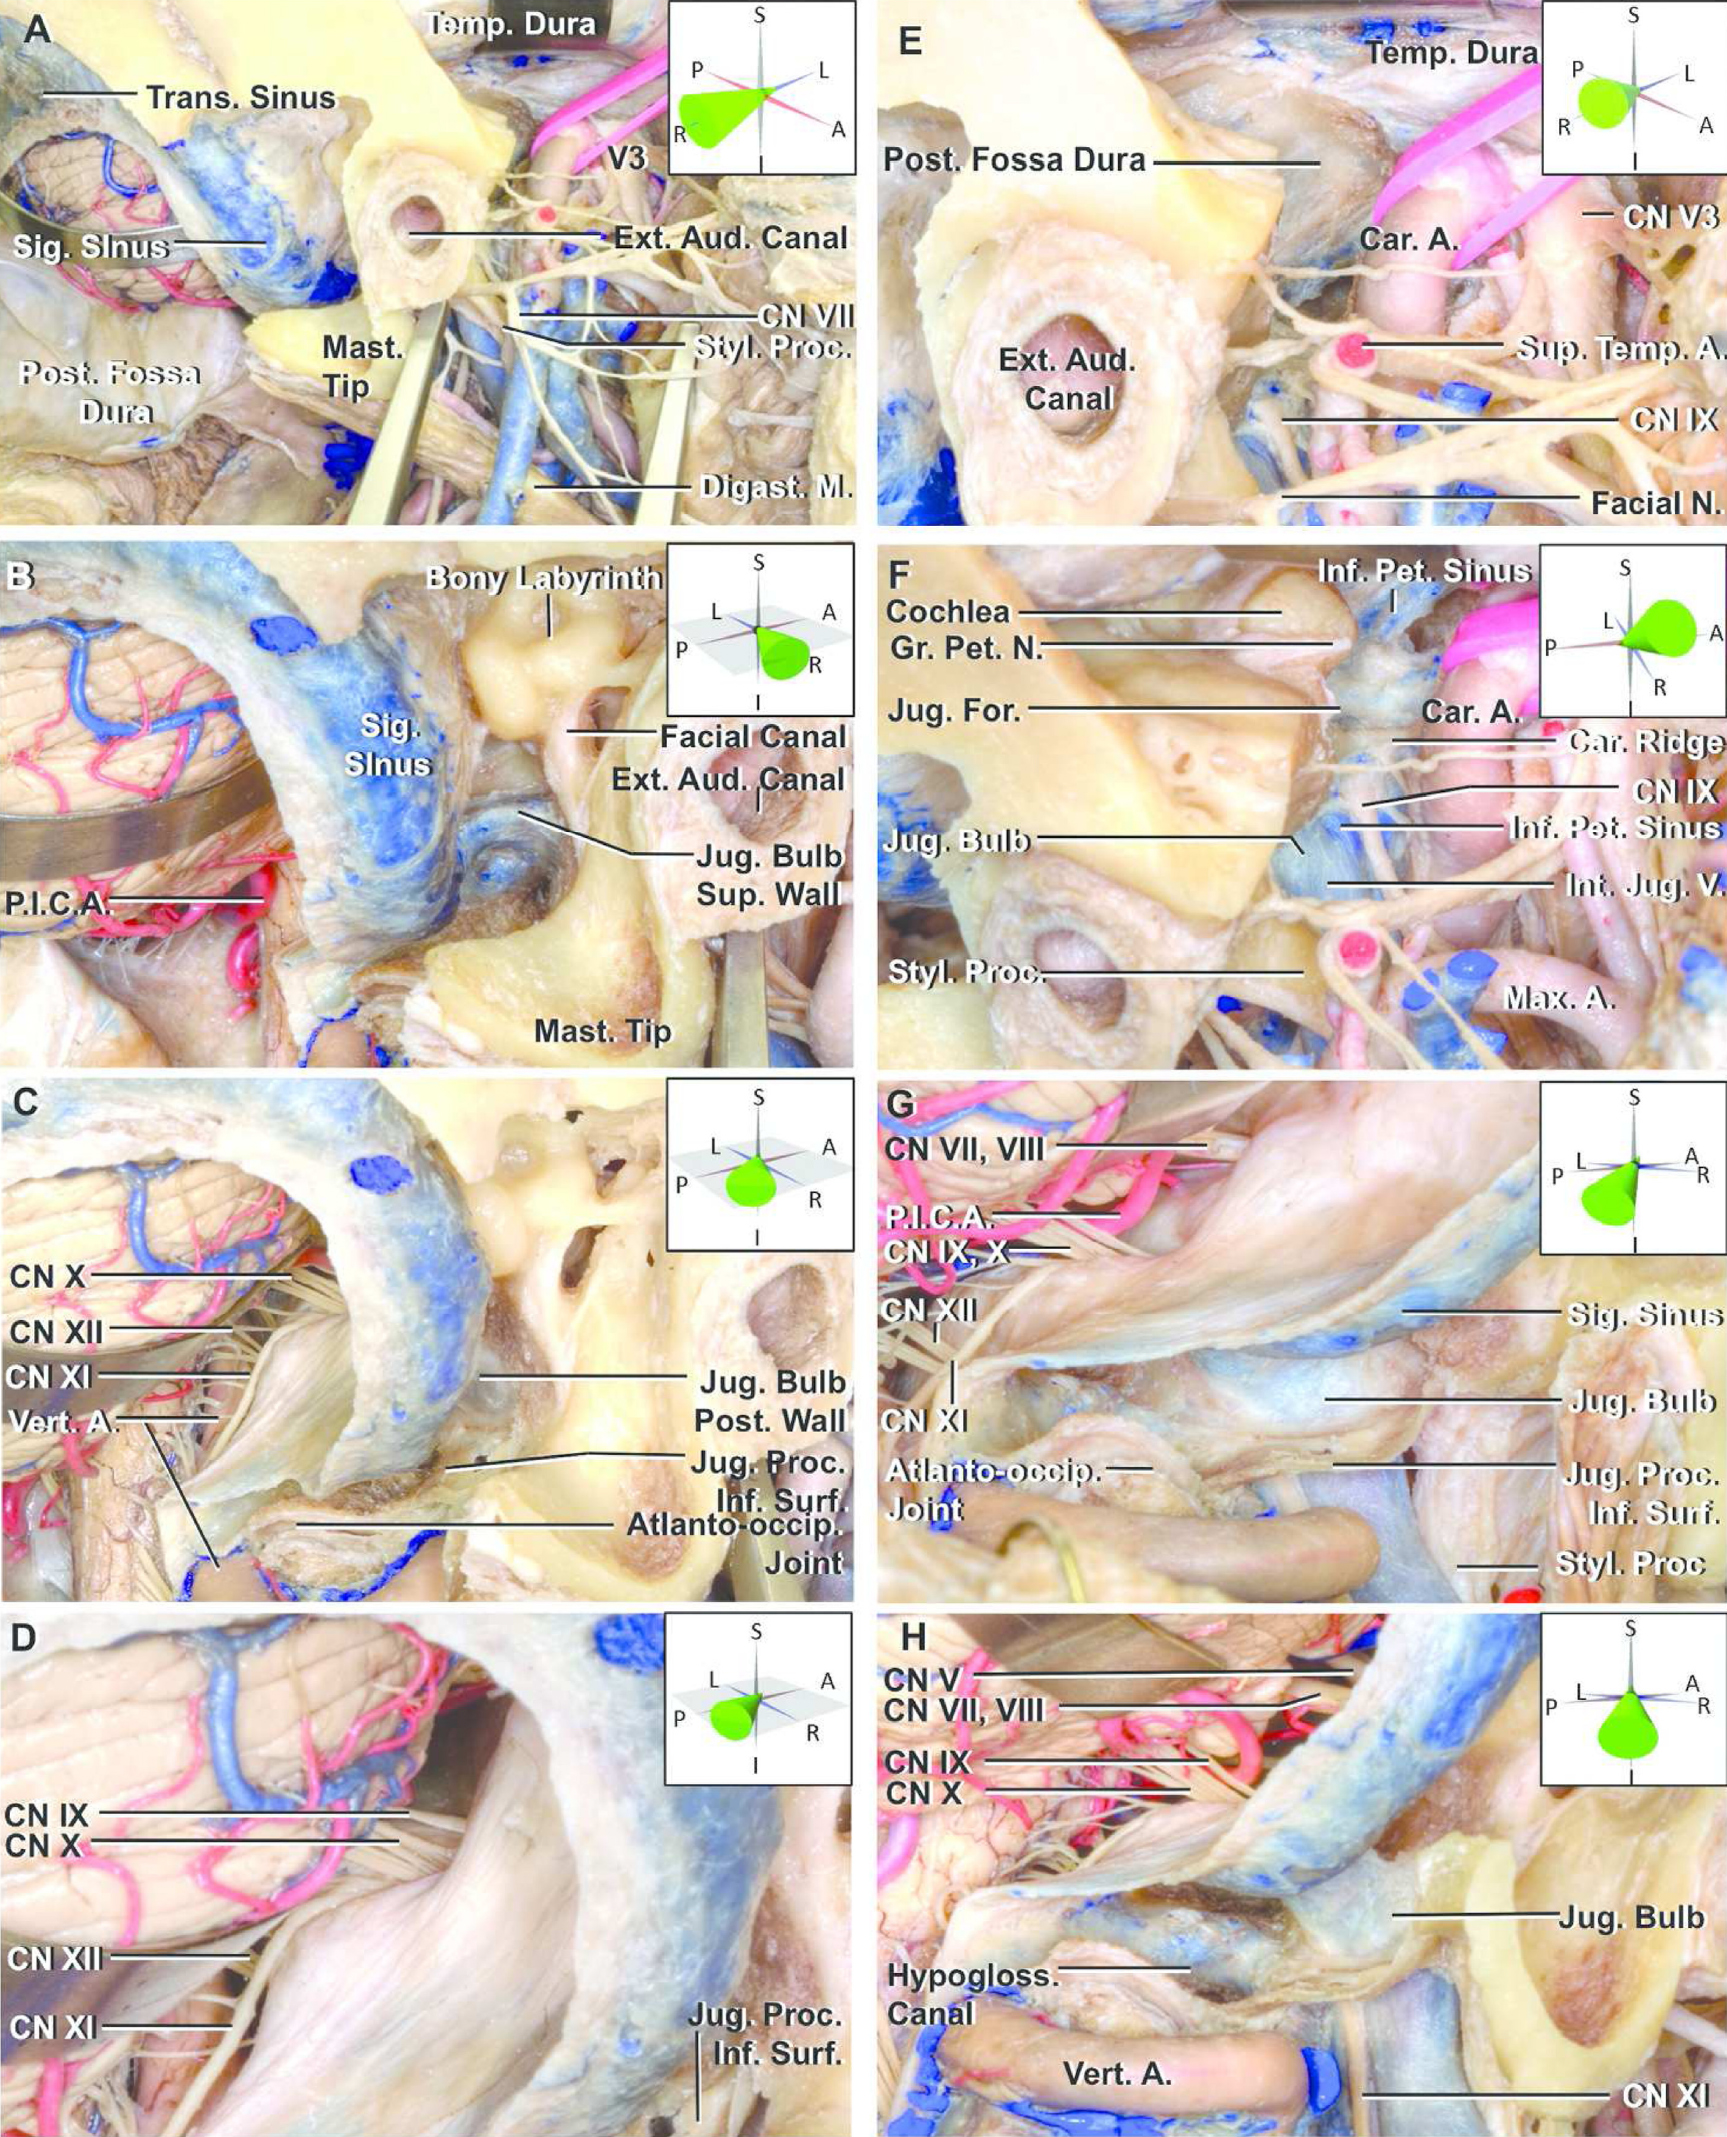 Figure 5. Multi-approach exposure of the jugular foramen. (A–H) The far lateral, preauricular transtemporal infratemporal, and transmastoid infralabyrinthine exposures have been completed on the right side to show the extent of exposure of the jugular bulb that can be achieved without resection of the external ear canal and translocation of the facial nerve. The parotid has been removed to make it easier to see the facial nerve and the area around the jugular foramen. The angle of view of each figure is shown in the insert using 3D coordinate axes. (A) Lateral view. The mastoid tip, styloid process, and external ear canal are obstacles to exposing the jugular foramen. (B) Posterolateral exposure viewed parallel to the external ear canal. The superior and lateral surfaces of the jugular bulb can be identified from this angle. In this view, the mastoid tip does not block access to the lateral aspect of the jugular bulb. However, the facial canal blocks access to the jugular bulb. (C) A 45° posterolateral view. The jugular process has been removed while preserving its inferior surface. Removing the jugular process exposes the posterior wall of the jugular bulb. (D) Rotating the view posteriorly provides a view of cranial nerves (CNs) IX, X, and XI entering the dural roof of the jugular foramen. (E) Lateral view of the preauricular subtemporal infratemporal fossa approach. The floor of the middle fossa has been removed and the medial half of the vaginal process of the tympanic part of the temporal bone drilled to expose the sigmoid sinus at the anterior edge of the jugular foramen. The parotid gland has been removed to facilitate the view of the anterior edge of the jugular foramen. (F) Superolateral view. The floor of the middle fossa lateral to the cochlea has been removed. The inferior petrosal sinus empties into the internal jugular vein just below the jugular bulb. The glossopharyngeal nerve descends through the dural glossopharyngeal meatus and turns downward late